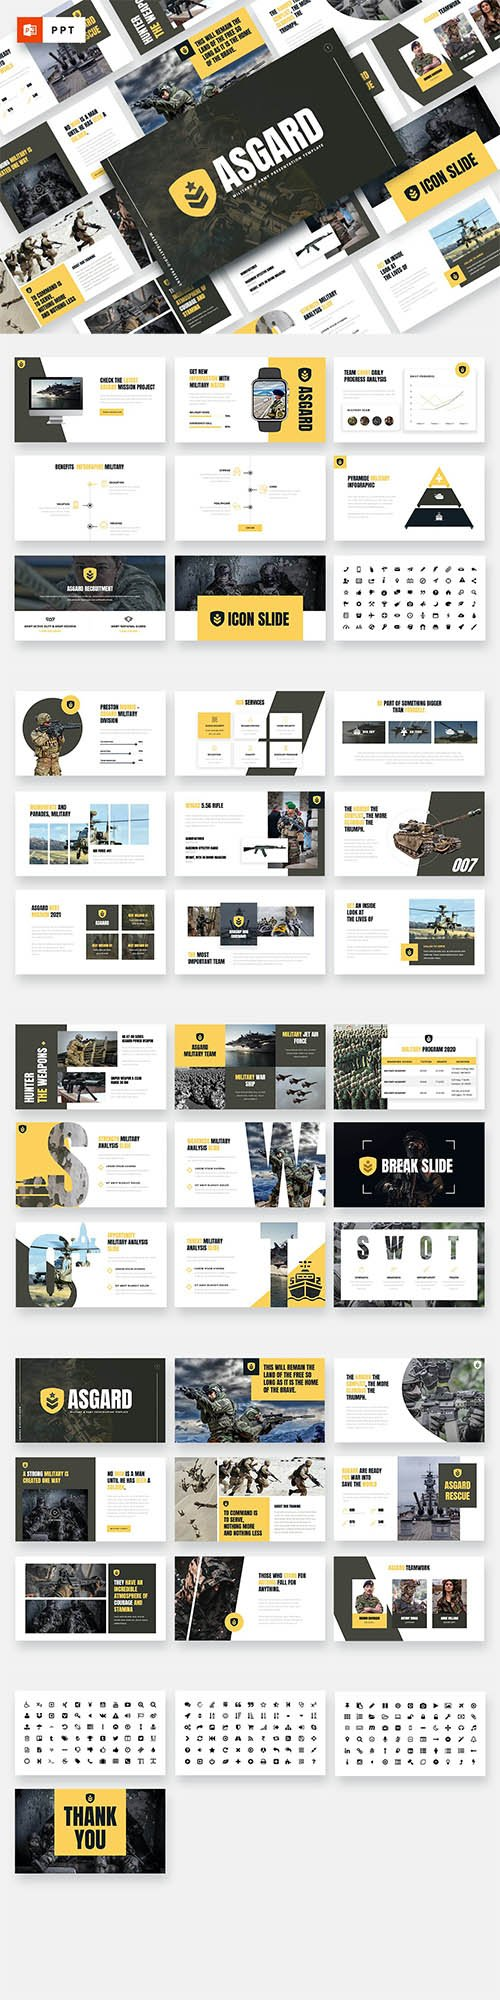 ASGARD - Military & Army Powerpoint Template